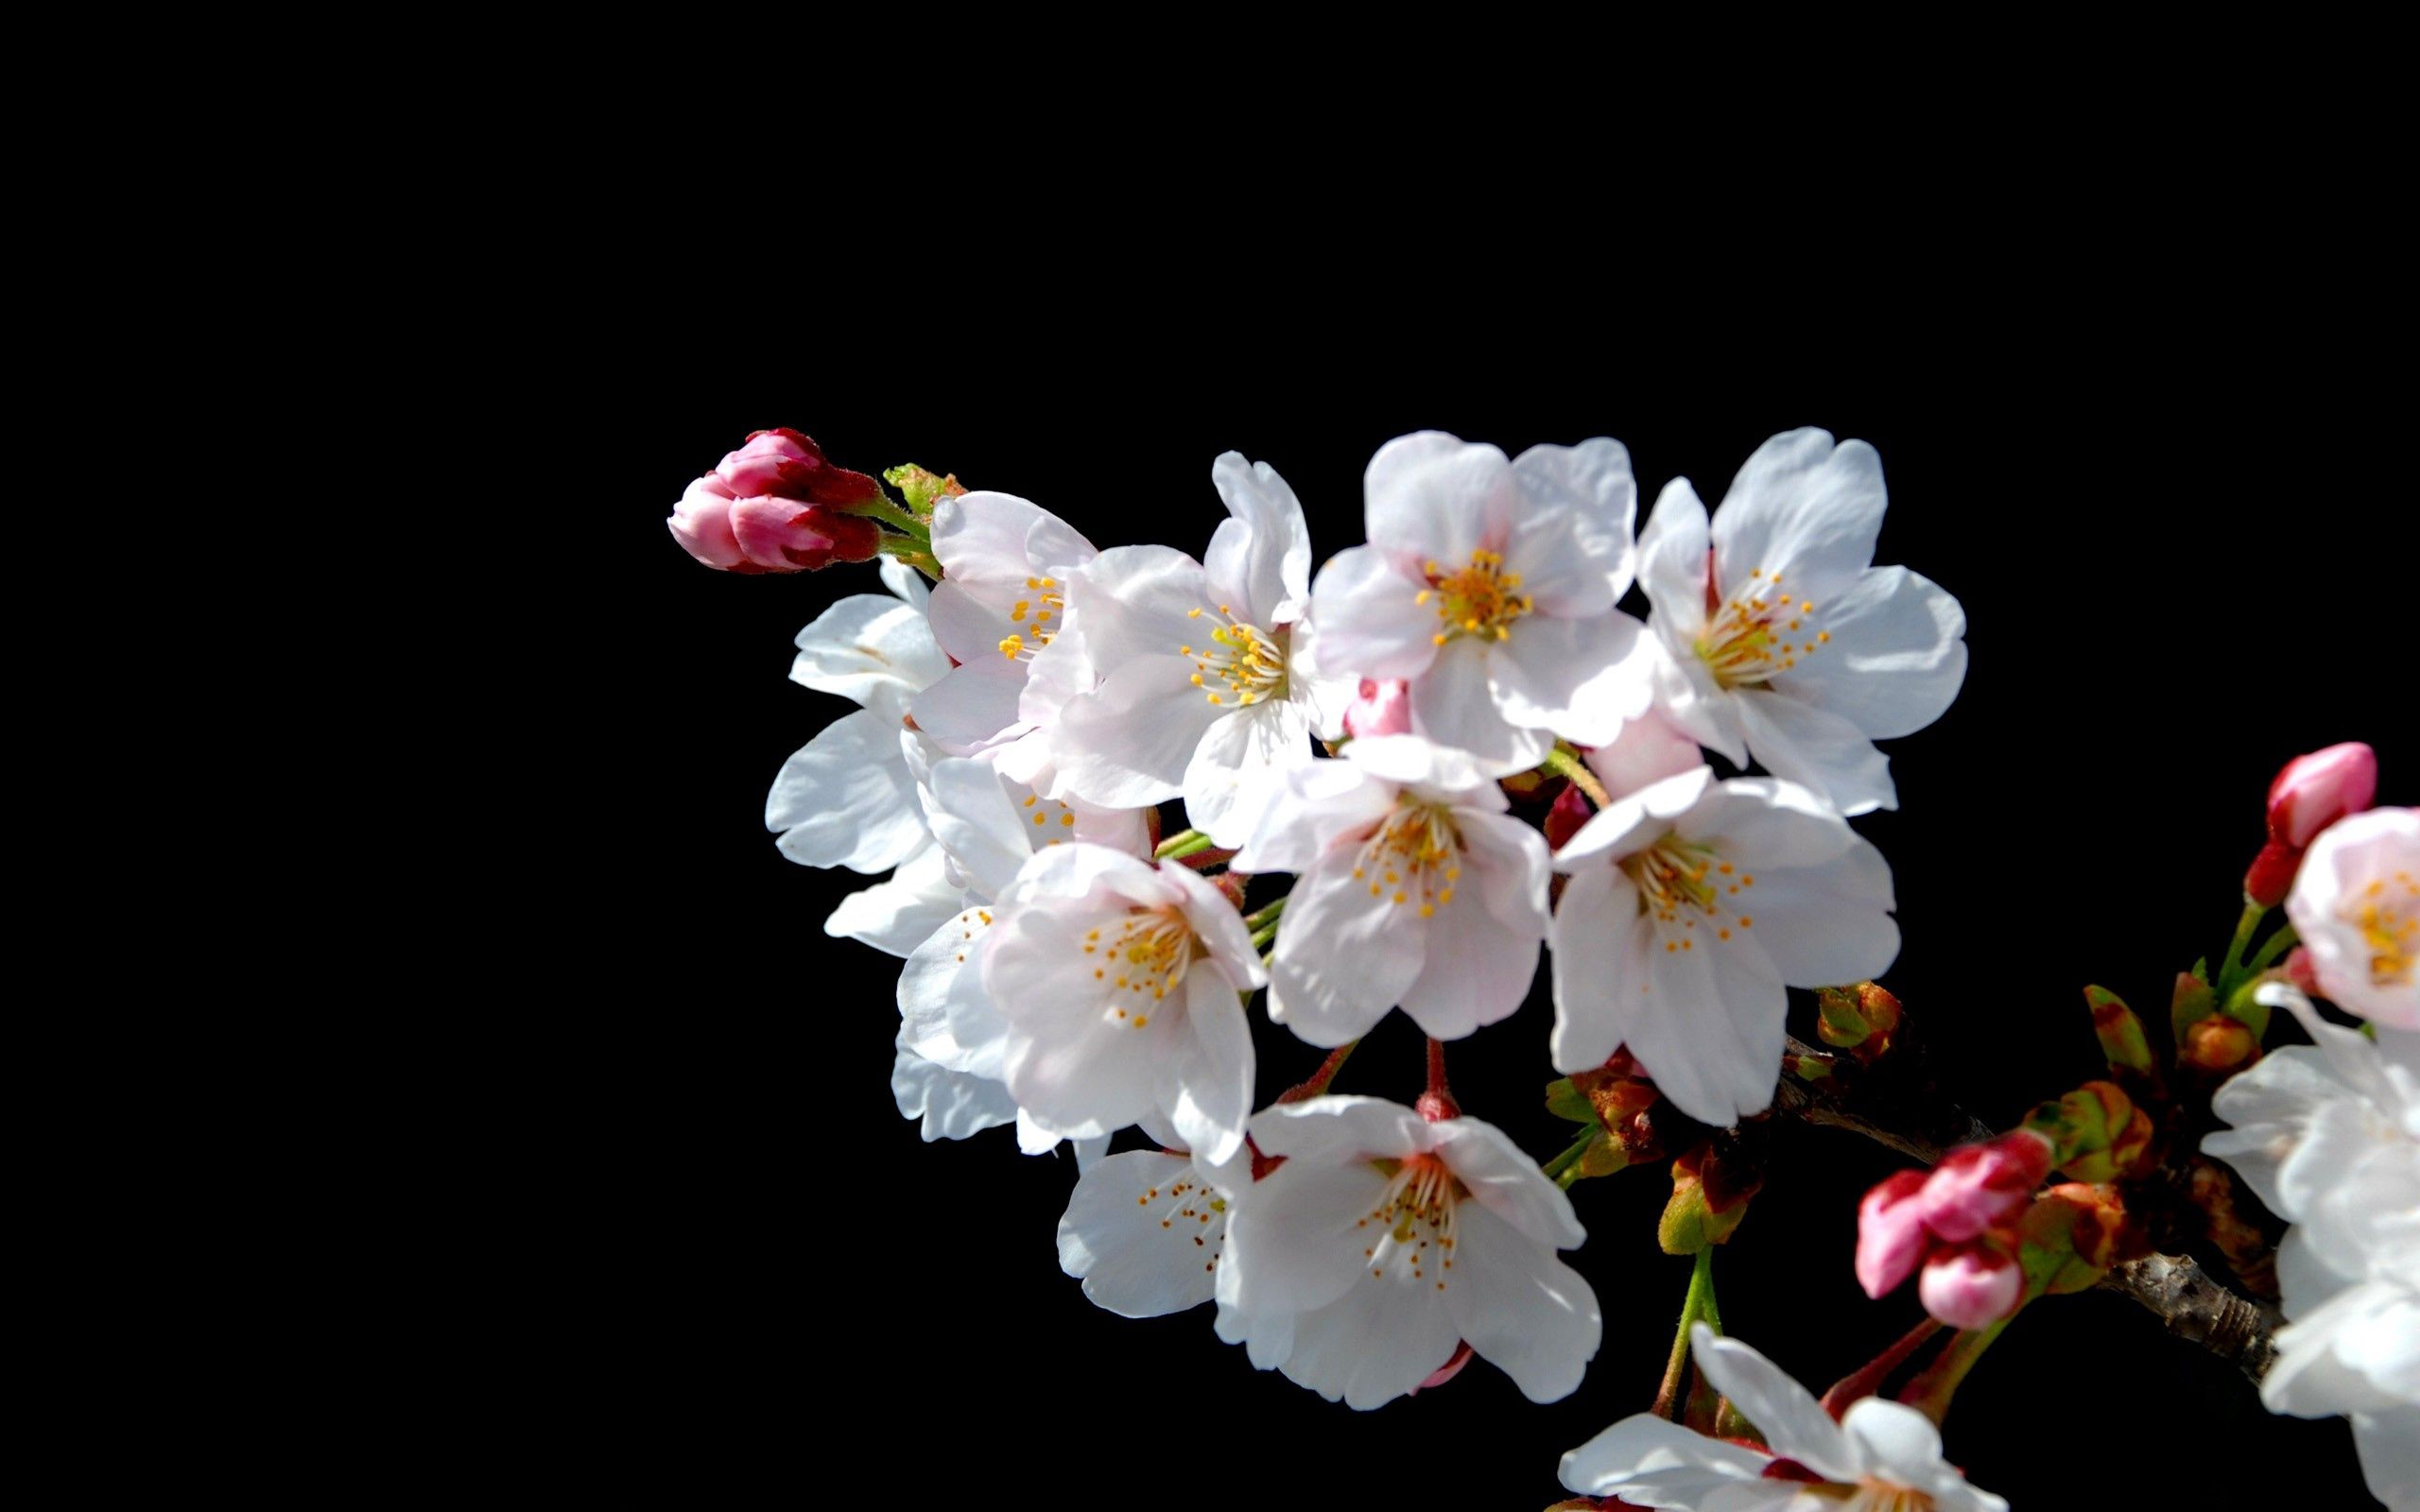 128978 Screensavers and Wallpapers Bloom for phone. Download Flowers, Macro, Bloom, Flowering, Branch, Spring pictures for free